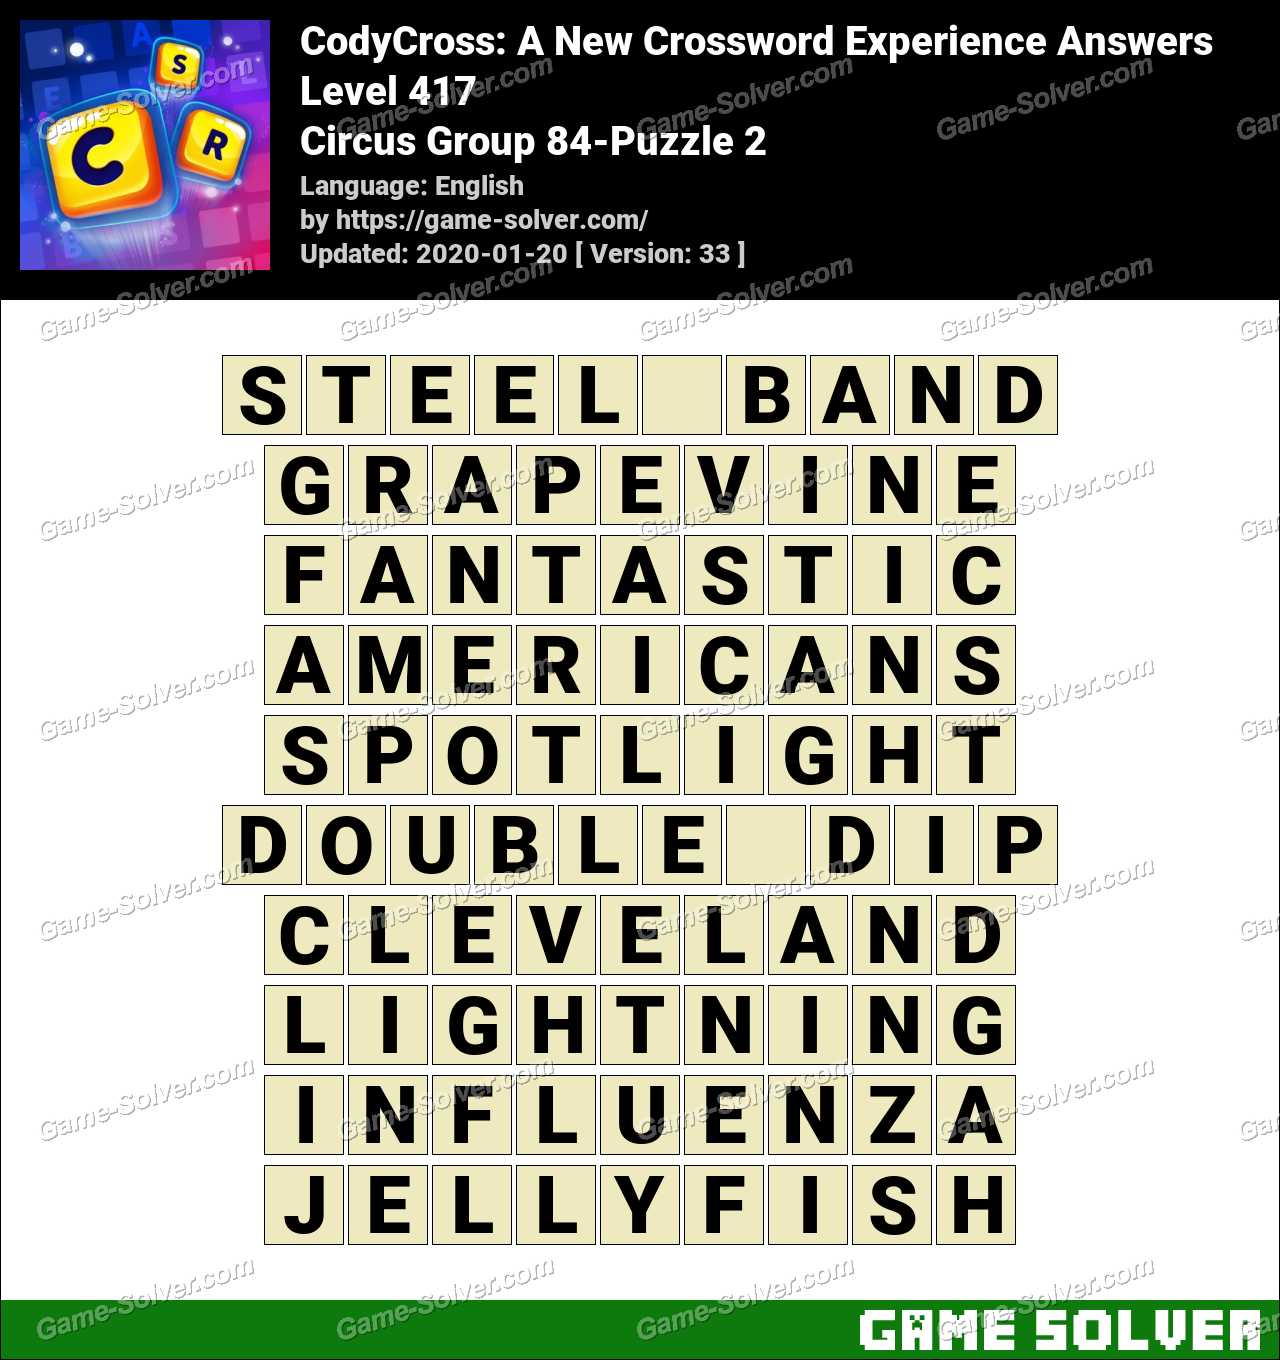 CodyCross Circus Group 84-Puzzle 2 Answers